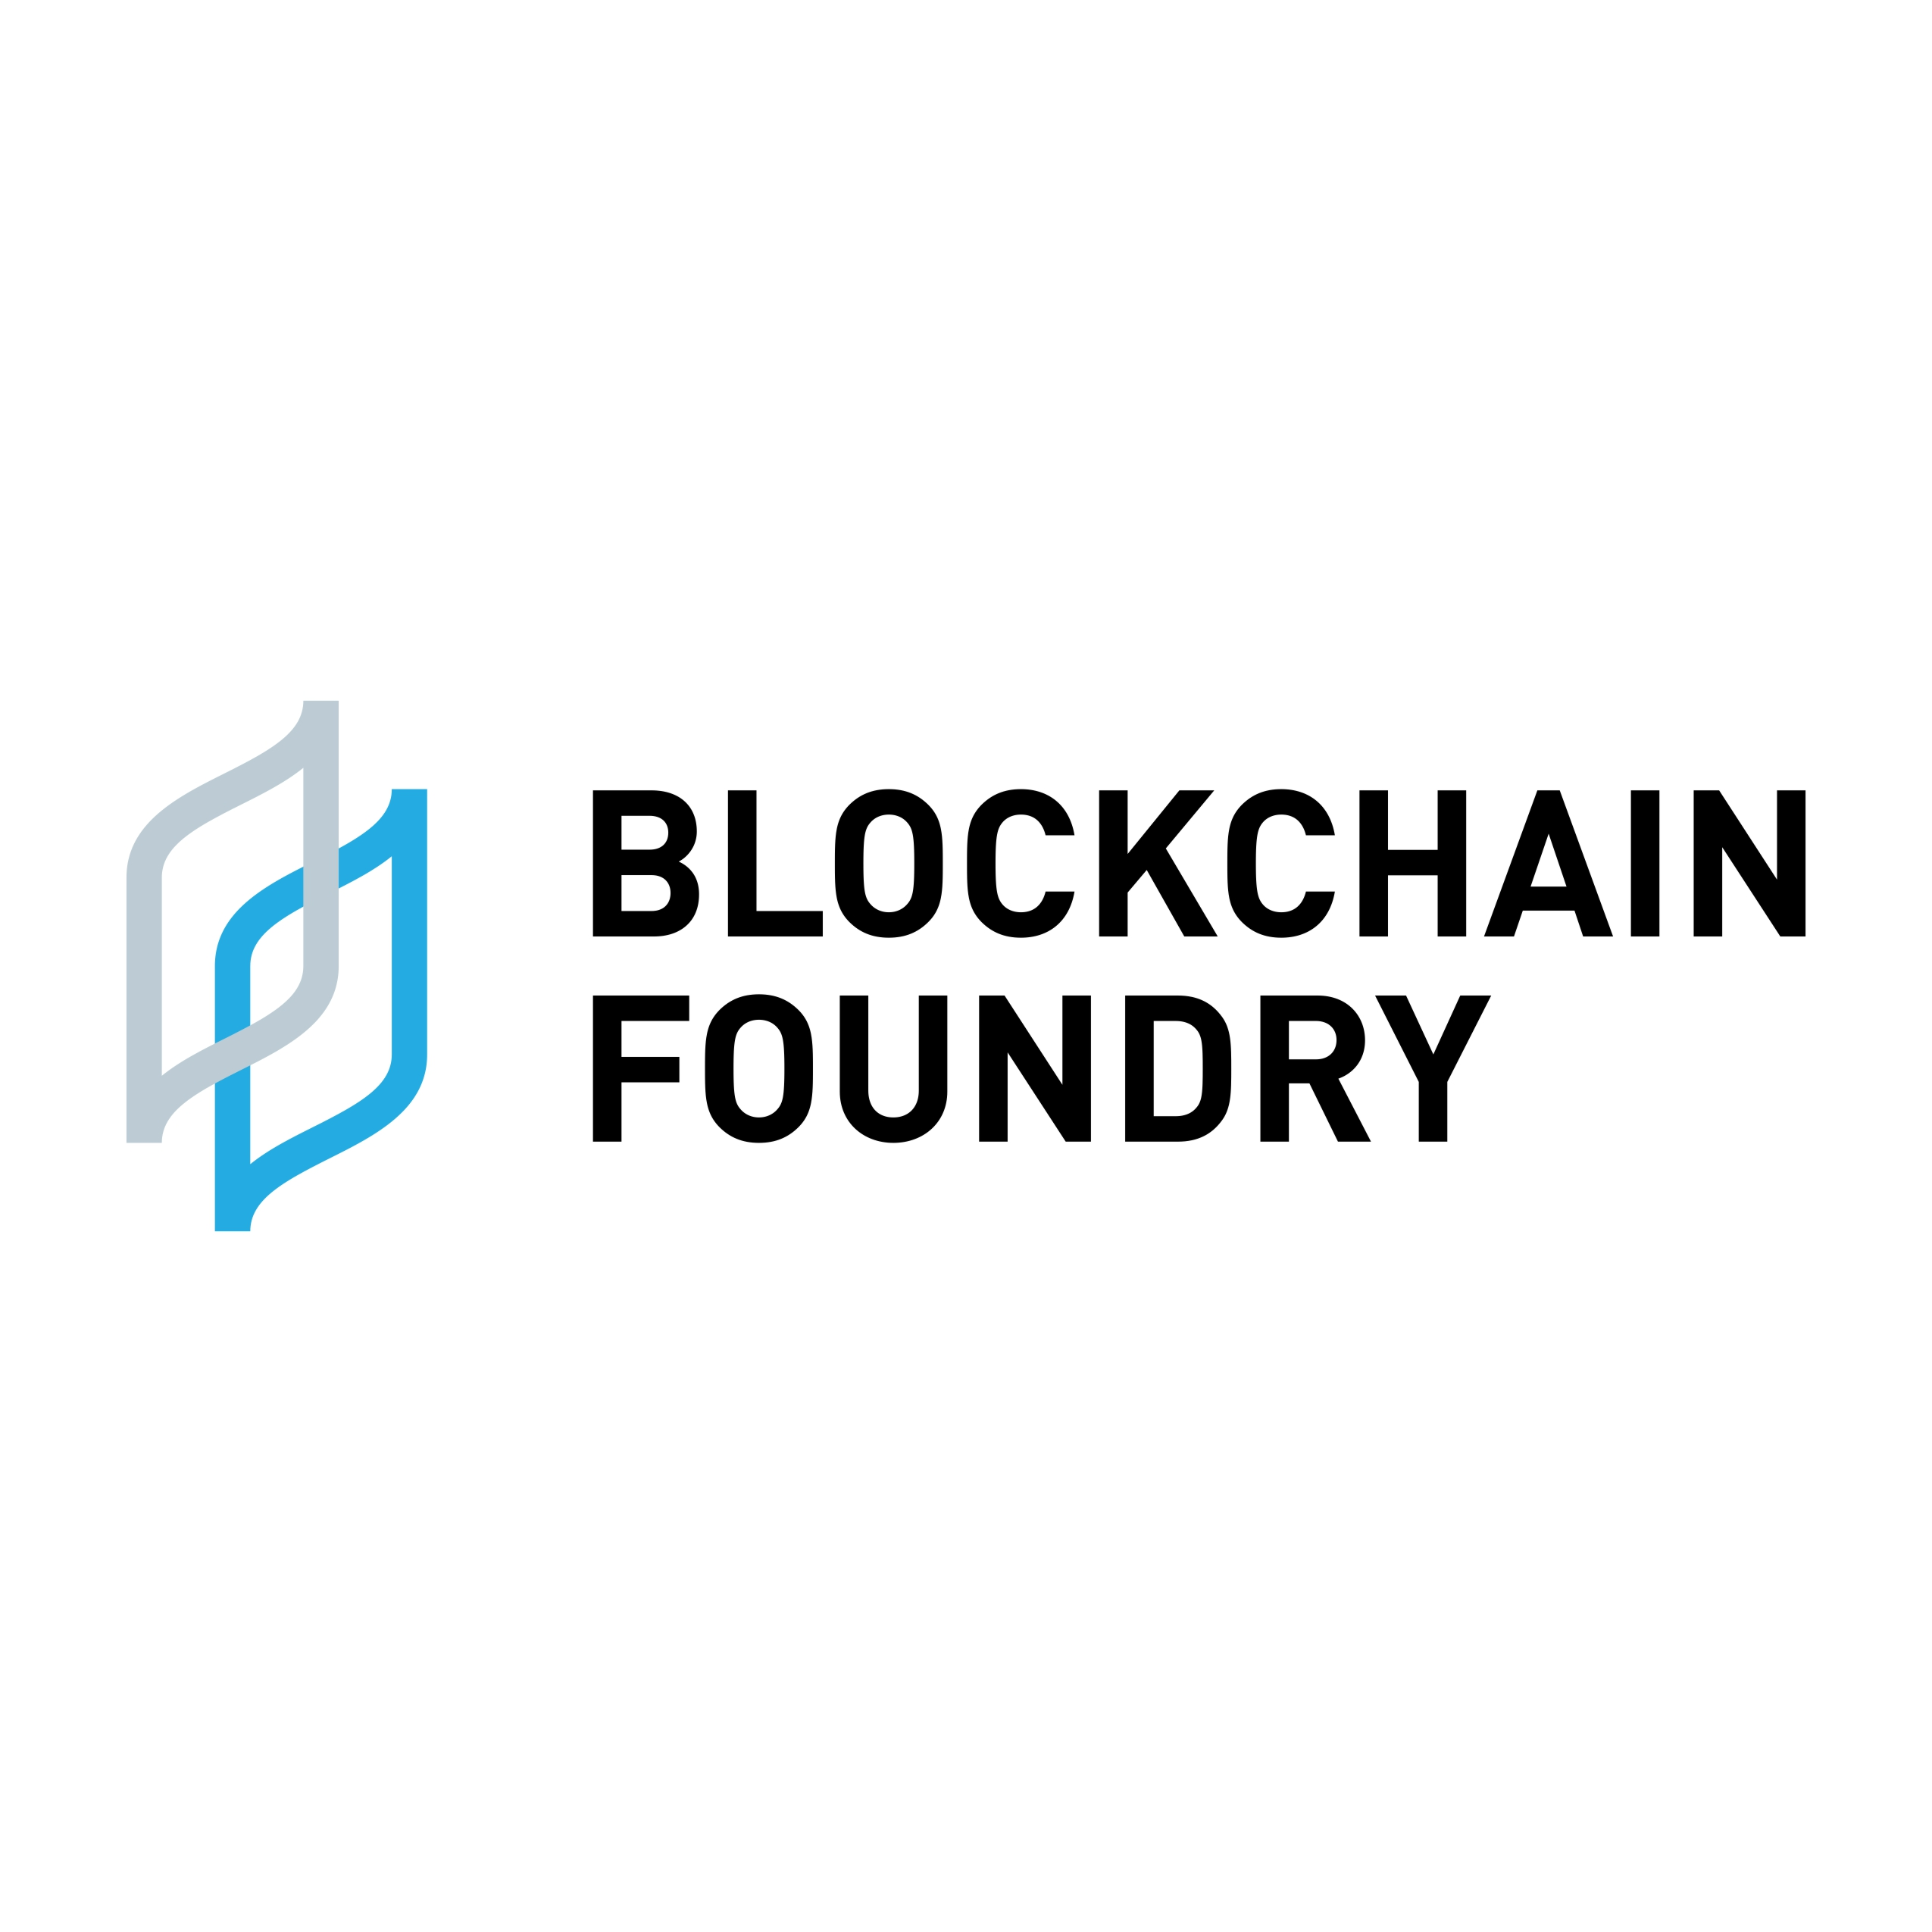 Blockchain Foundry Announces Private Placement Financing and Provides Corporate Update